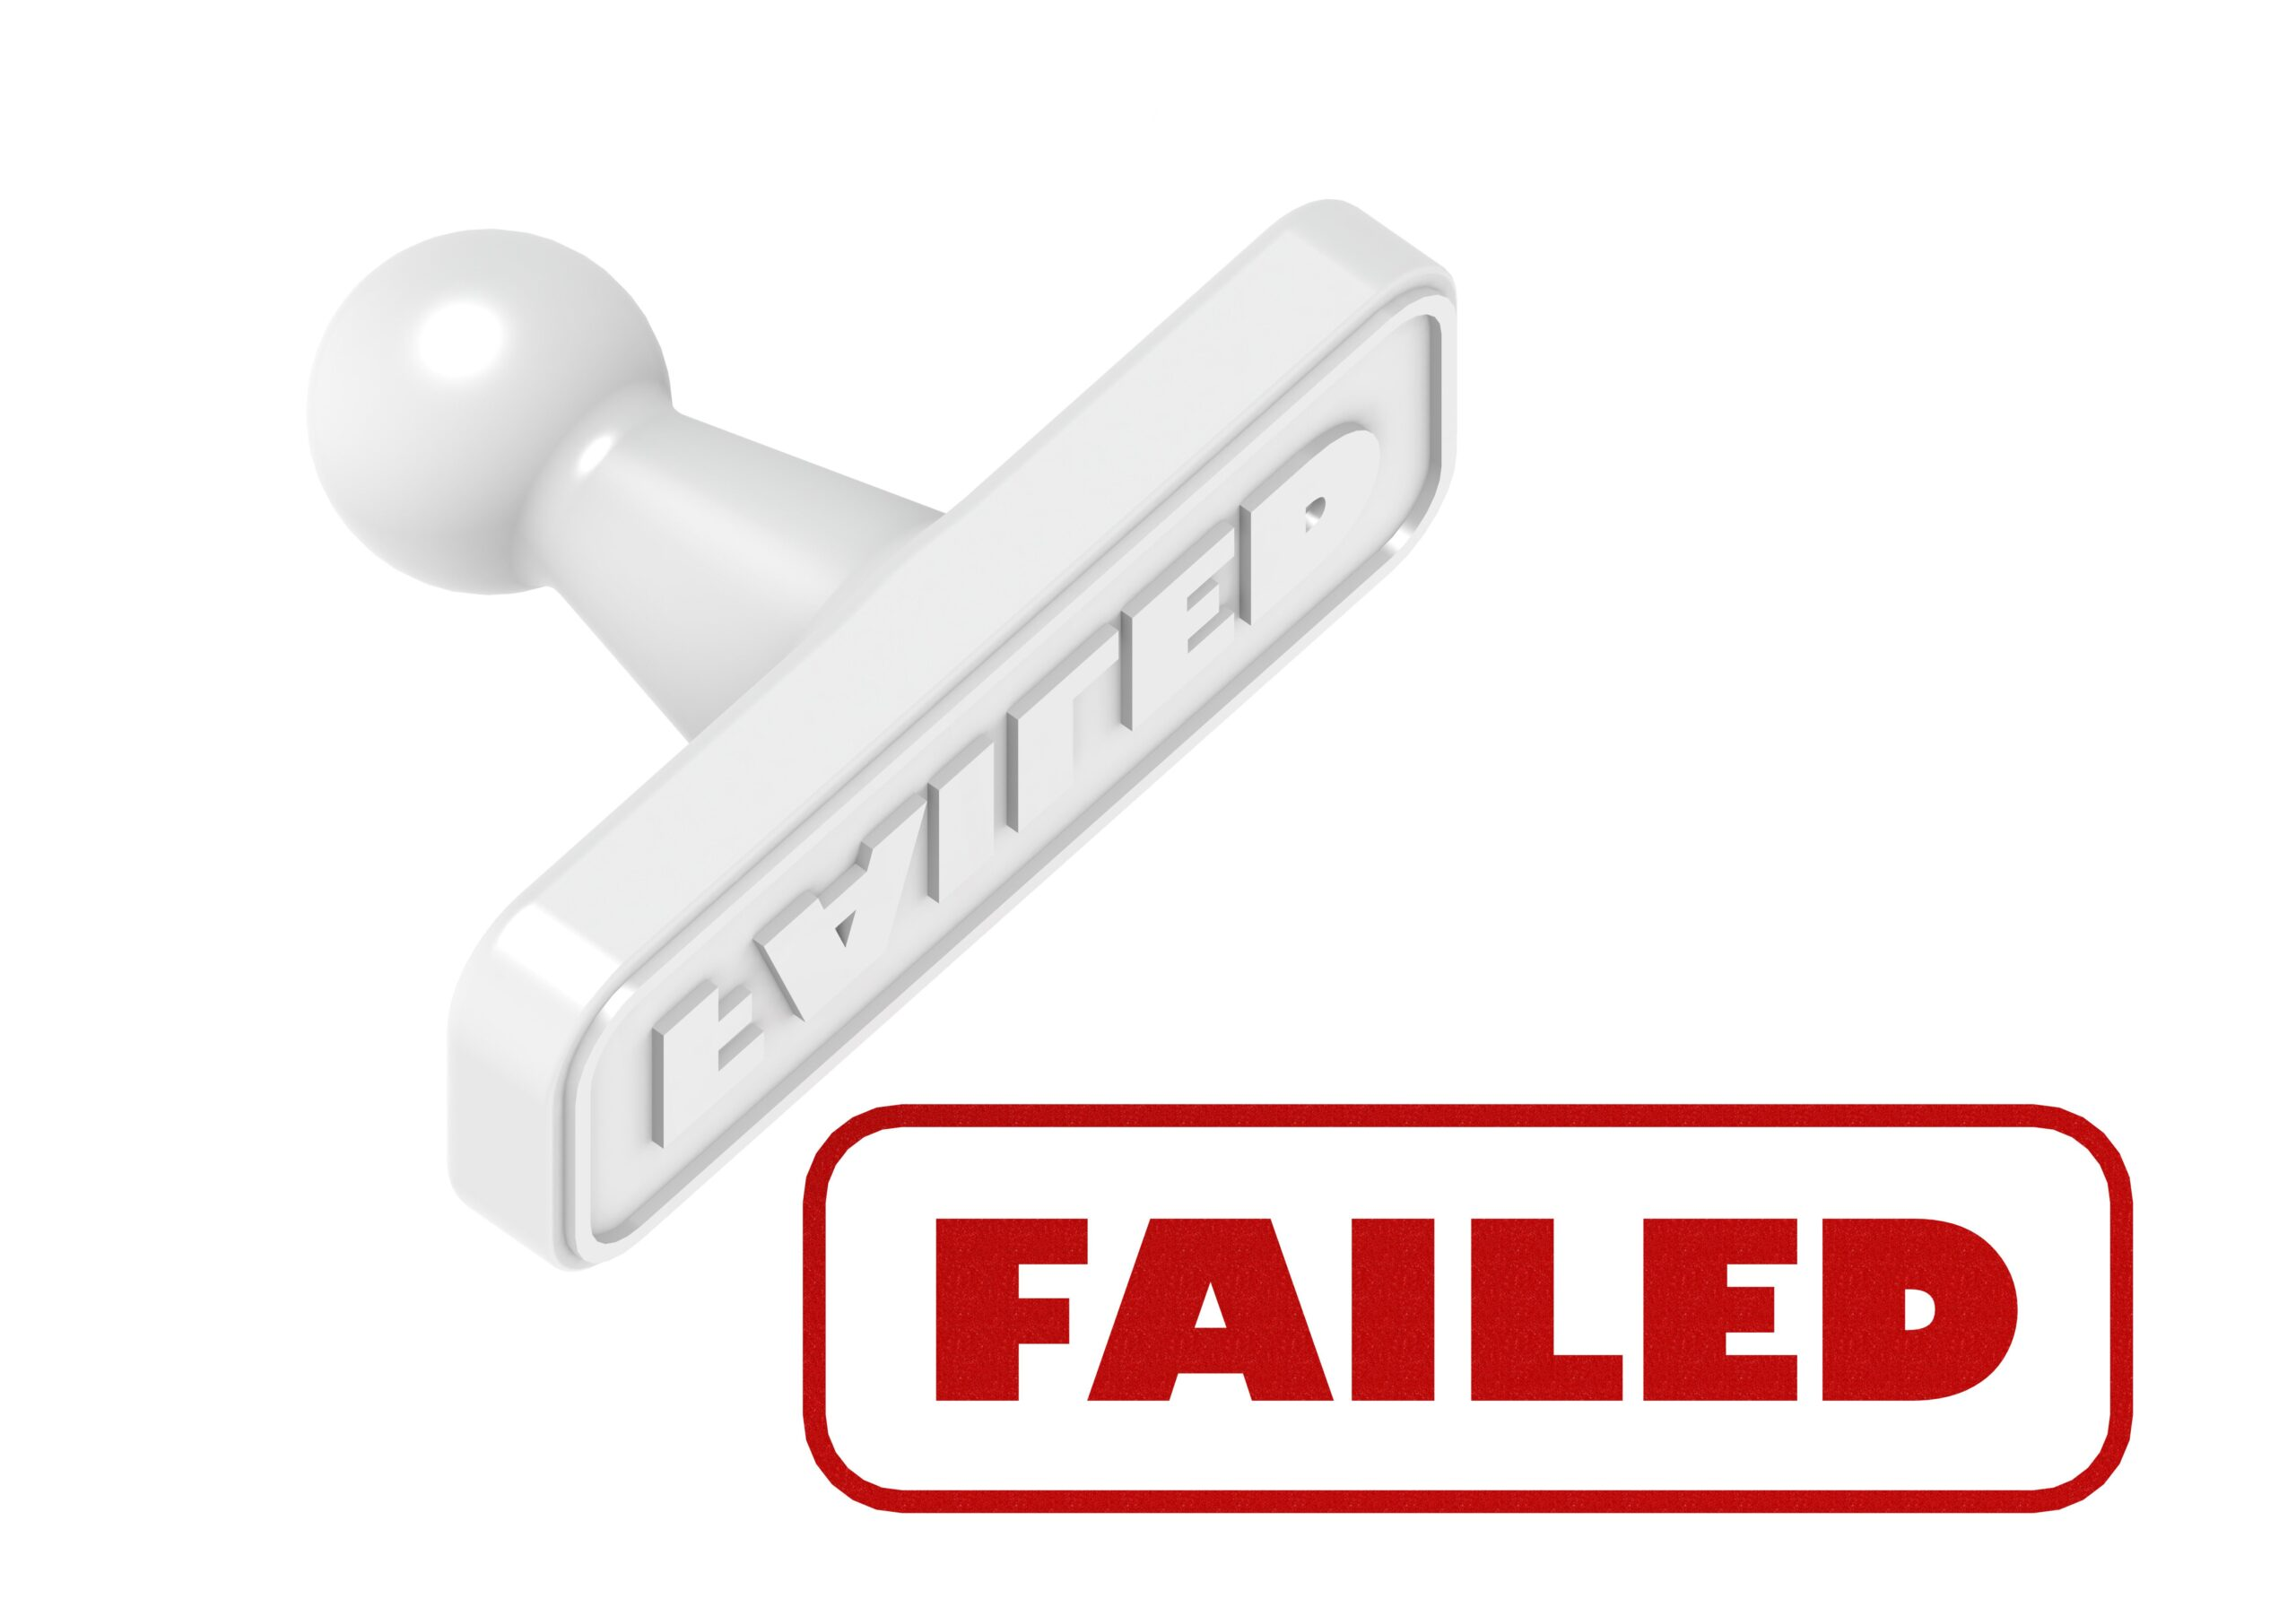 What happens if my IVA Fails?